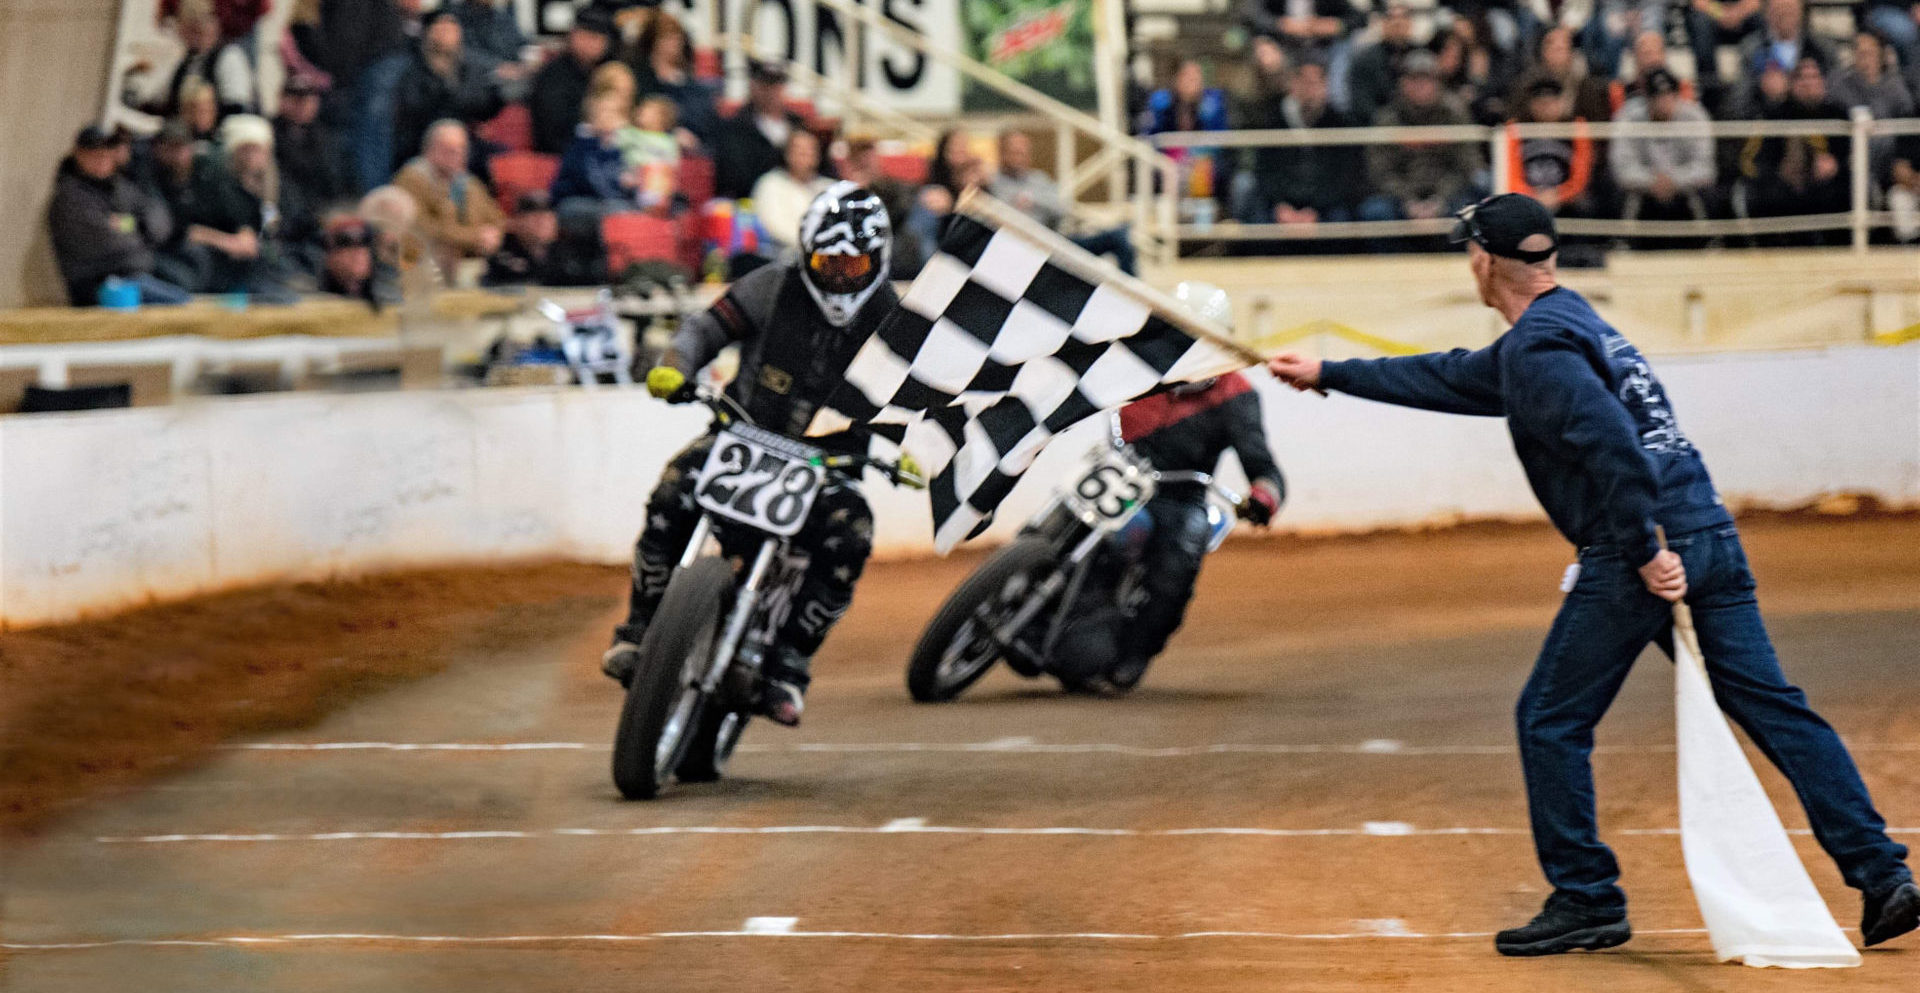 Richard Brodock (278) and Henry Sansing (63) during an AHRMA dirt track event in Georgia. Photo by Eddie RapidPhoto, courtesy AHRMA.